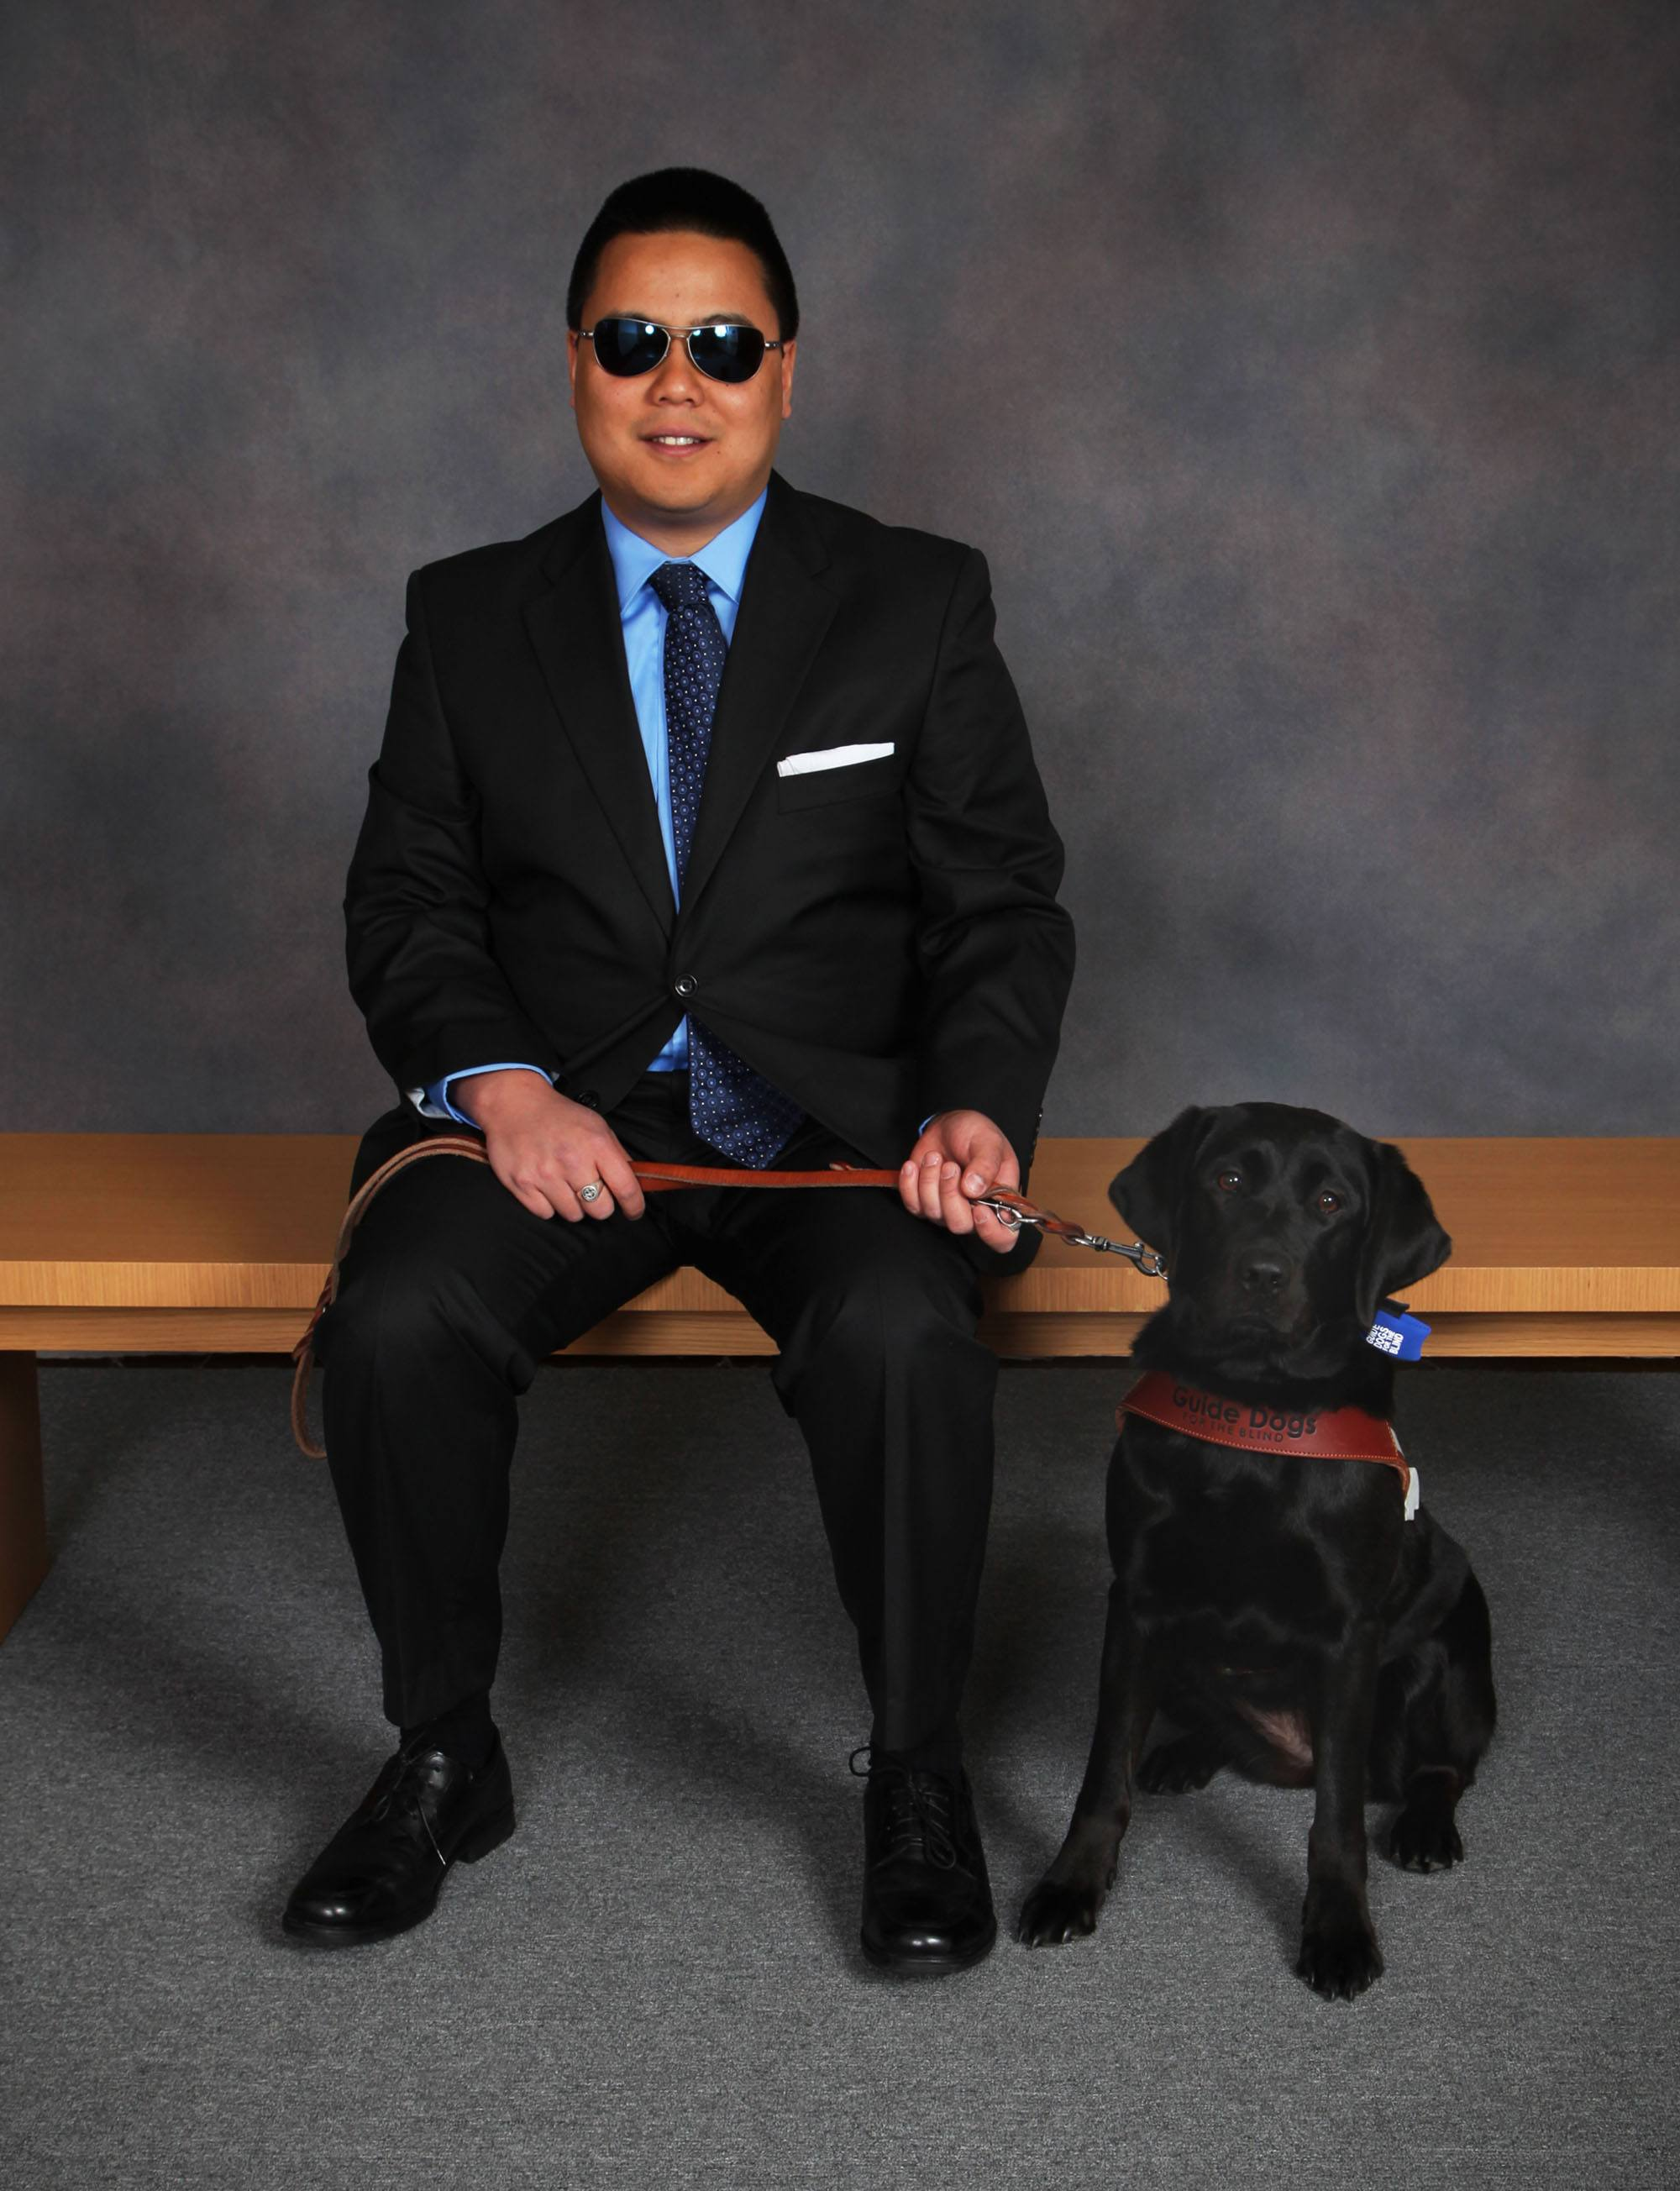 Anthony Janolino graduating from Guide Dogs for the Blind with Vanda (Guide Dogs for the Blind/Flickr)